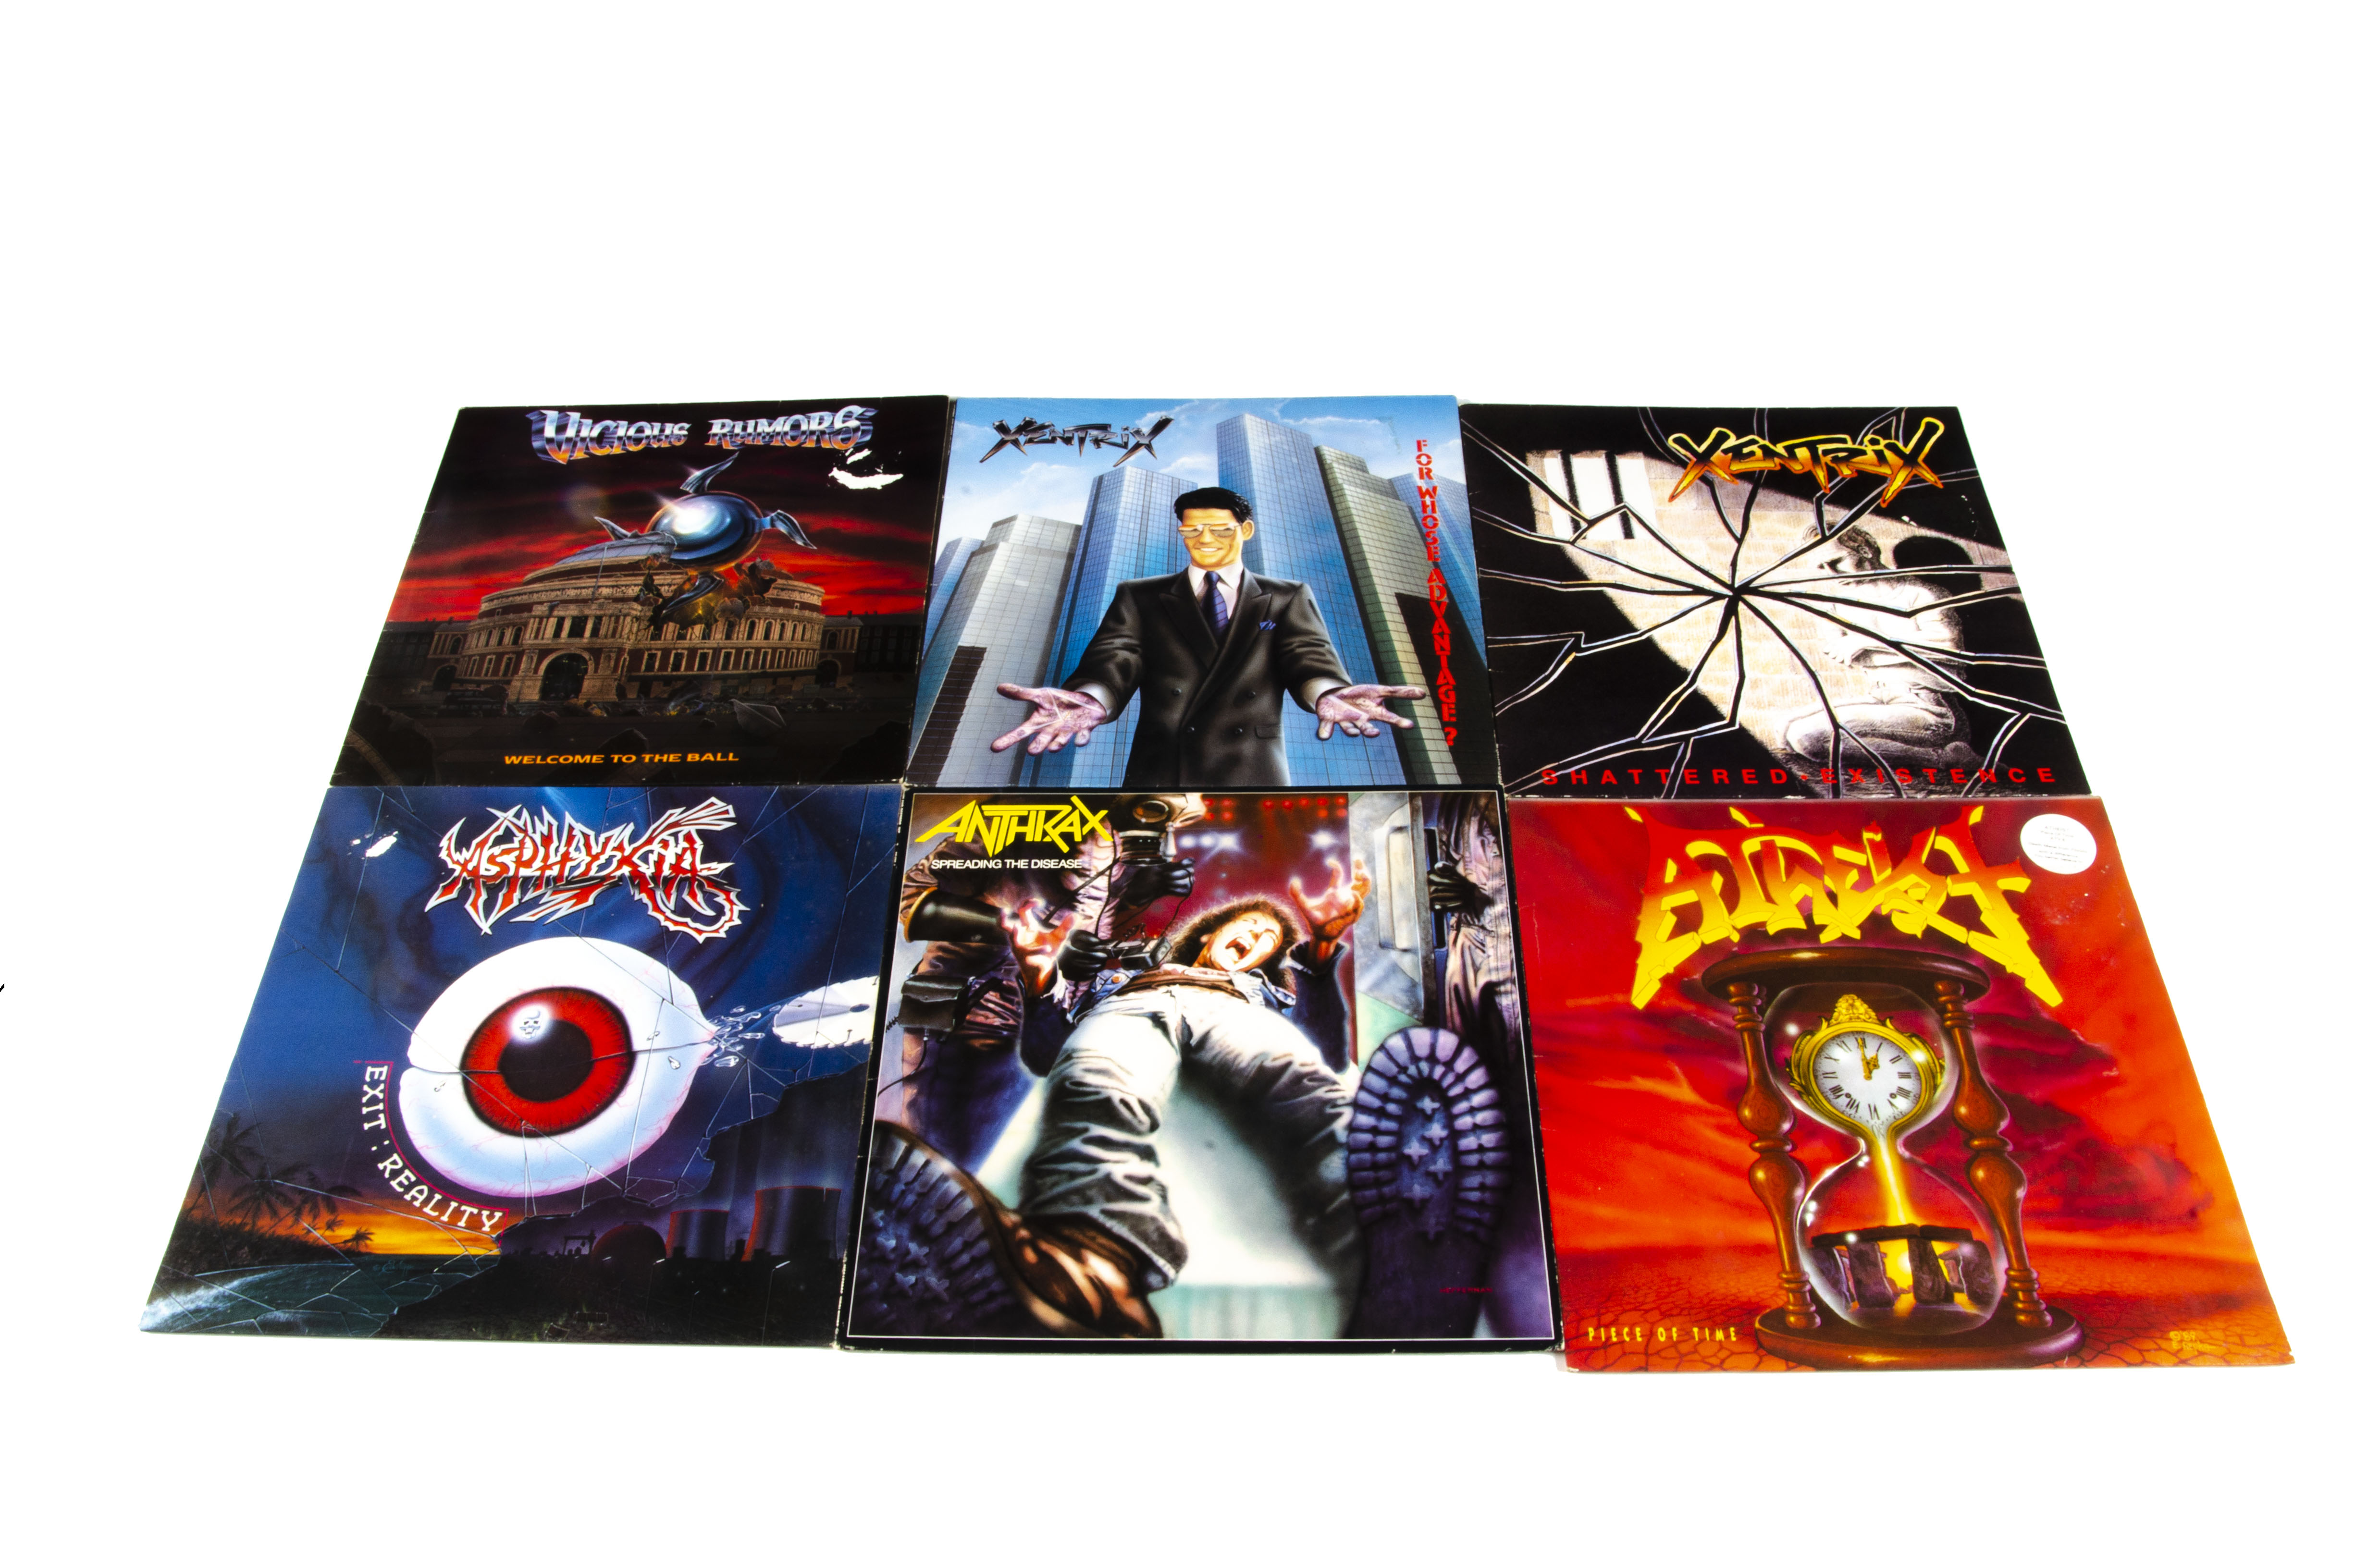 Thrash Metal LPs, six albums of mainly Thrash Metal comprising Anthrax - Spreading The Disease,